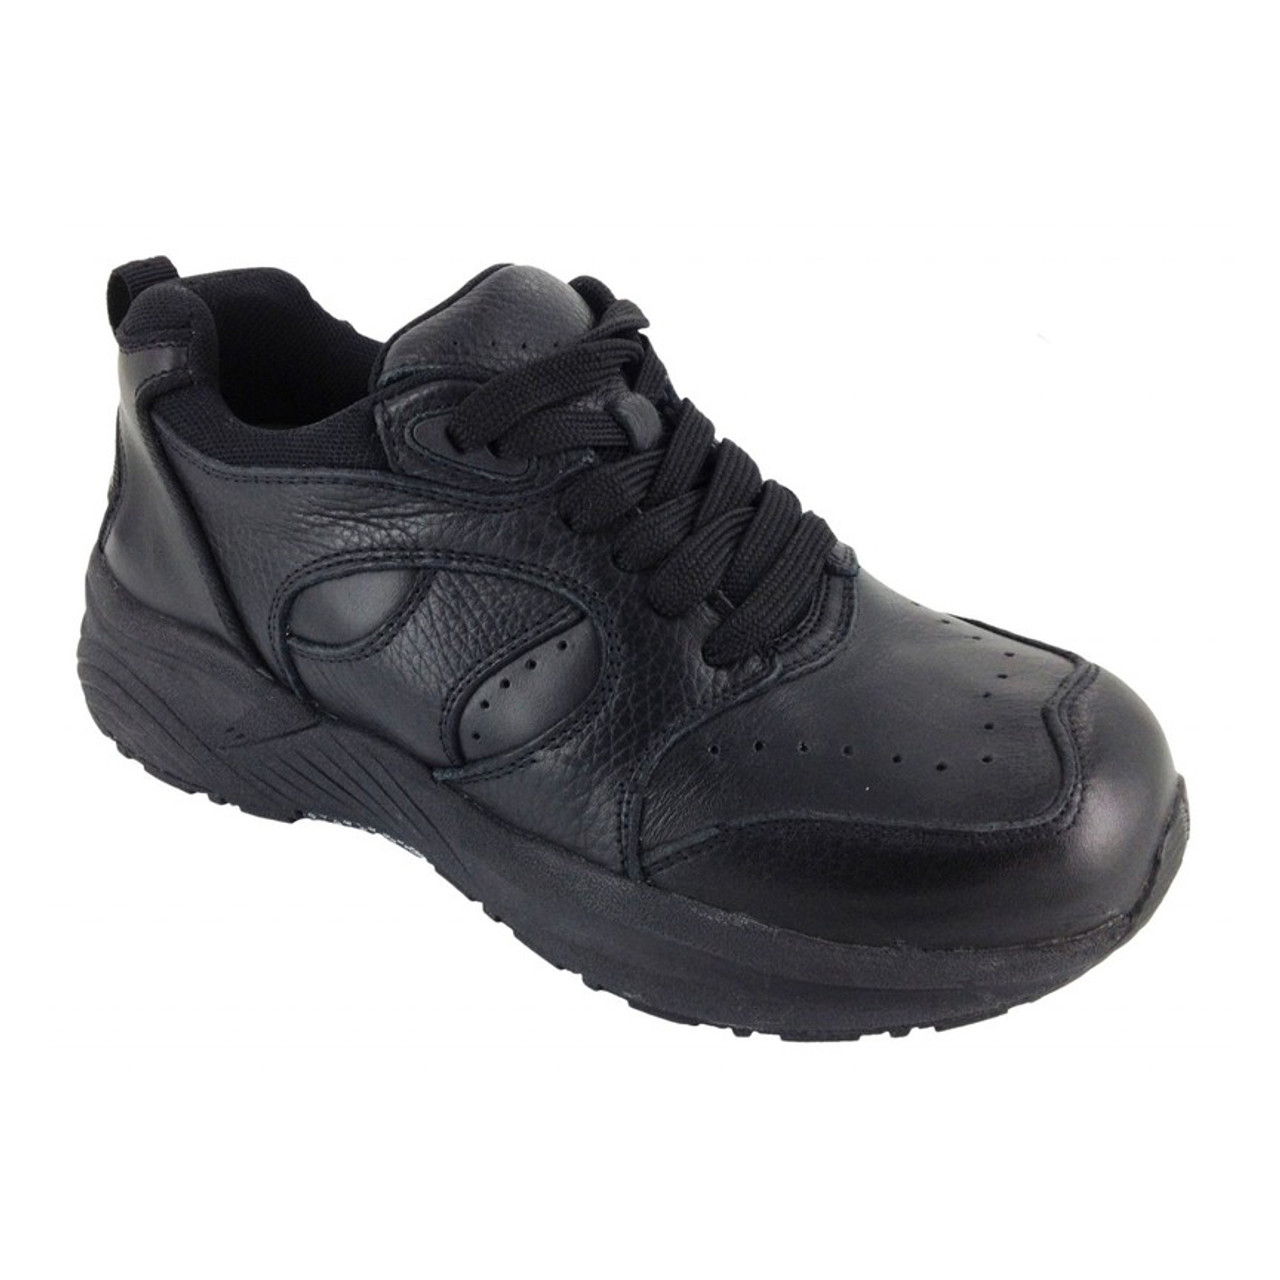 5dd93c29d5 Black Athletic Orthopedic Shoes With Laces For Men